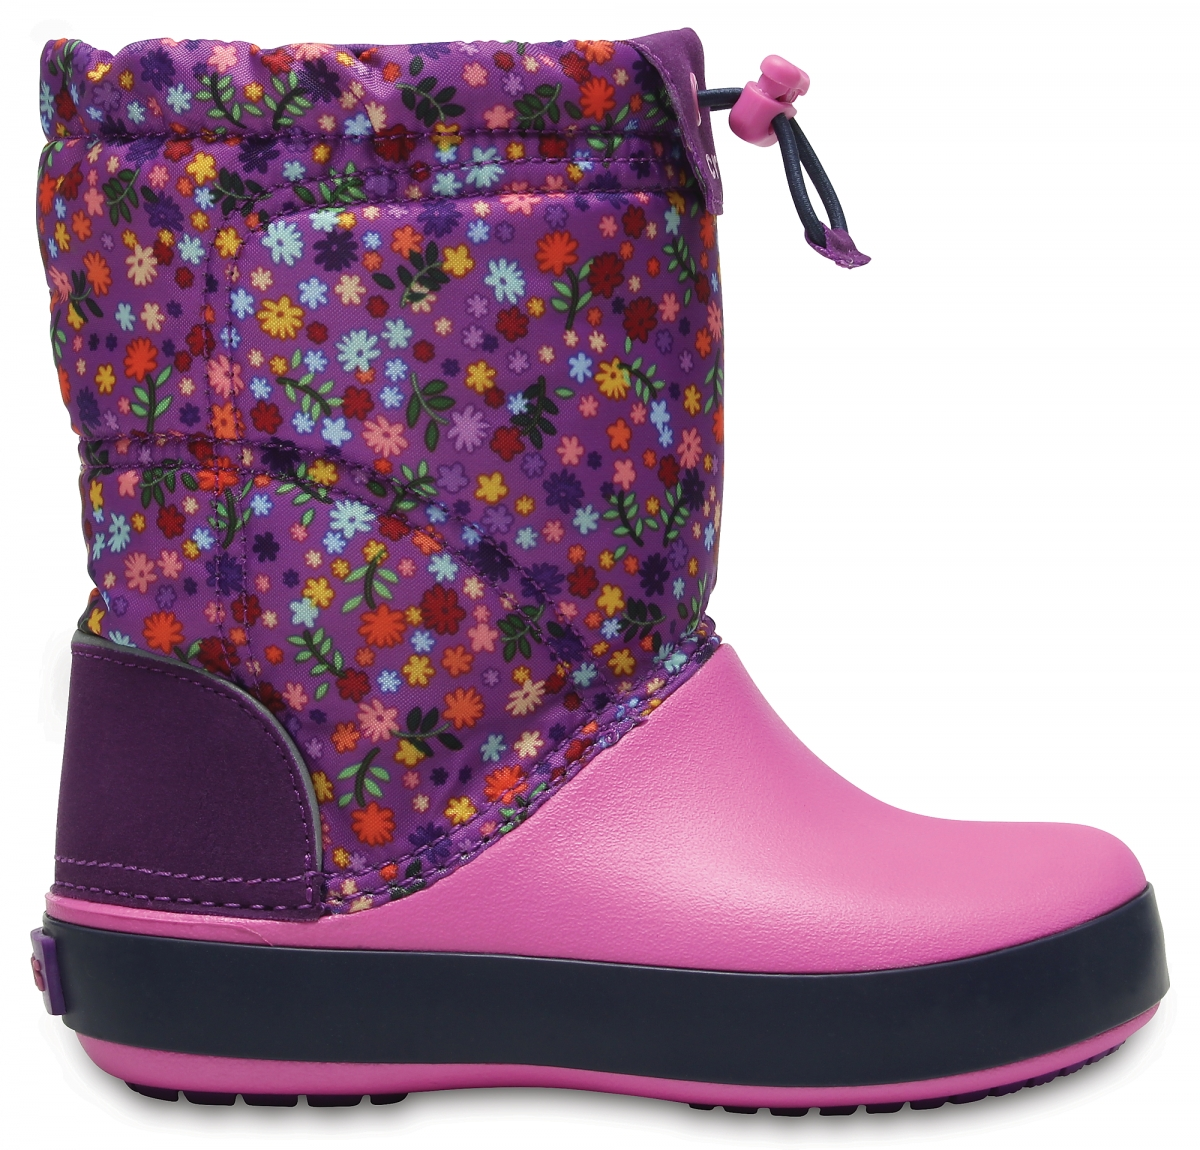 Crocs Crocband LodgePoint Graphic Boot Kids - Amethyst/Party Pink, C13 (30-31)